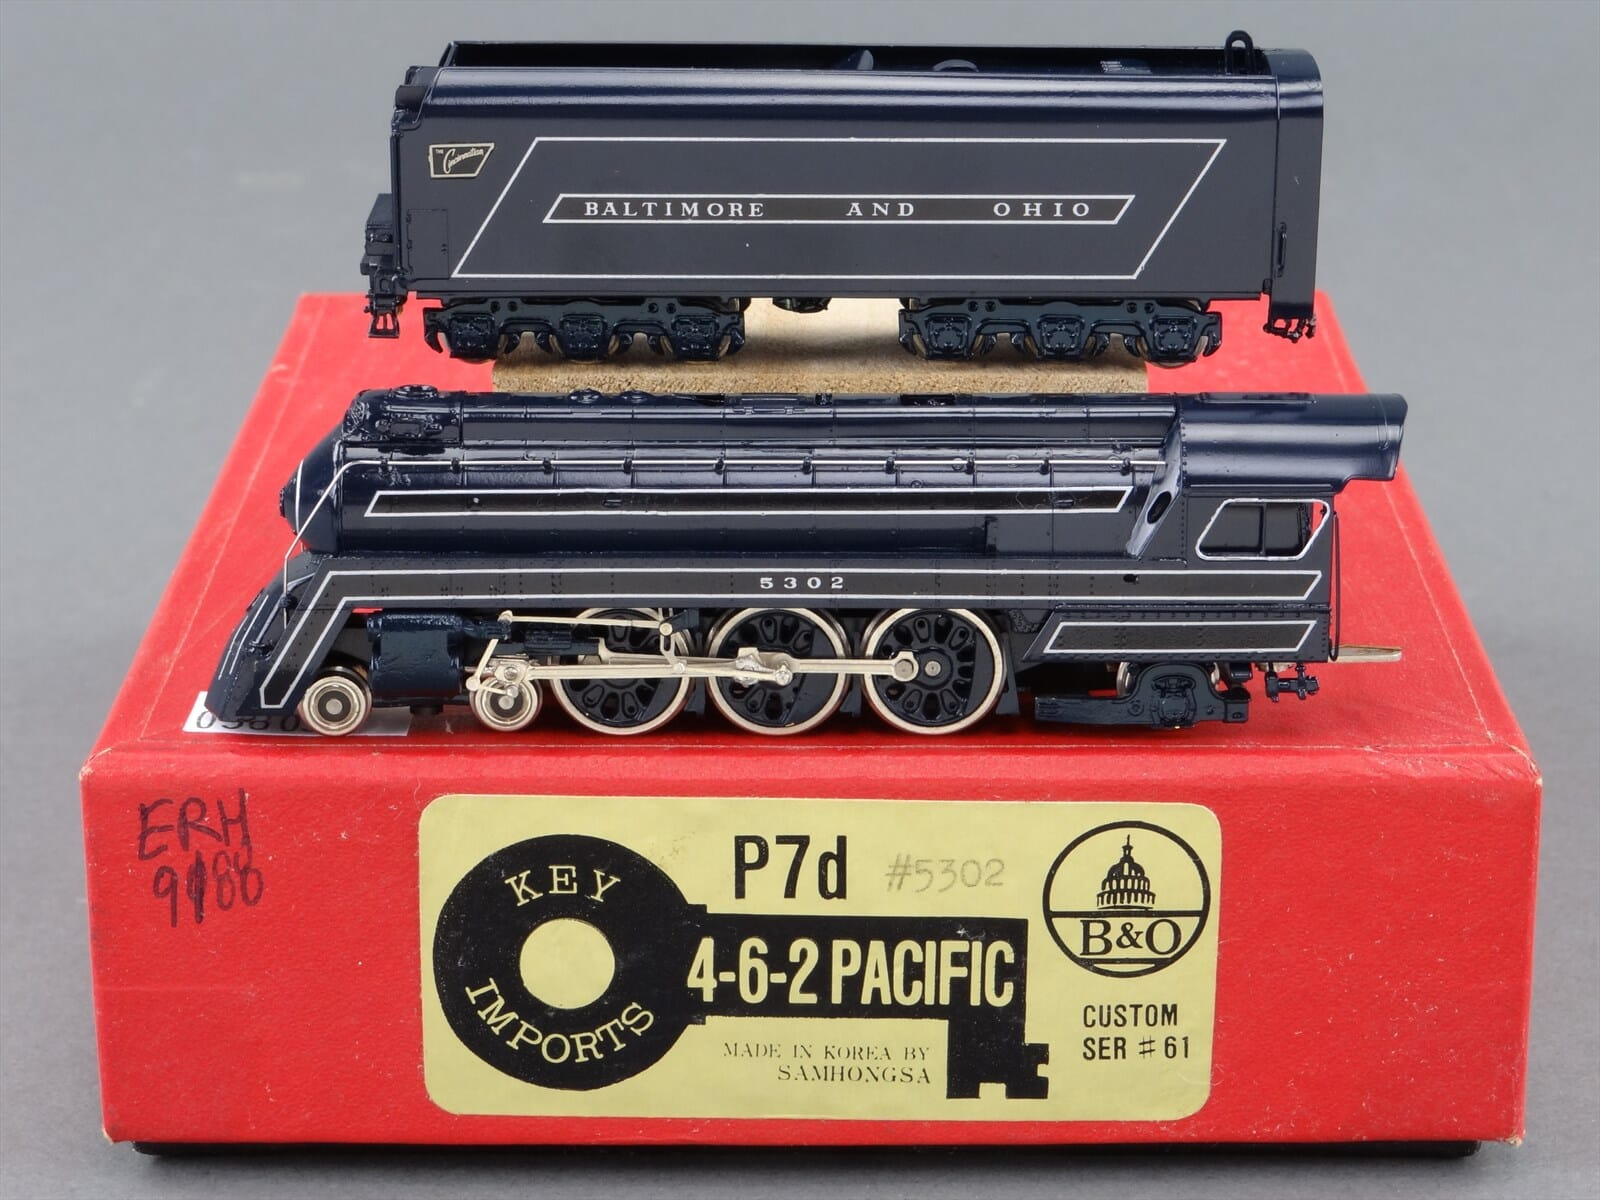 N Scale - Key - P7d #5302 - Locomotive, Steam, 4-6-2, Pacific B&O P-7 - Baltimore & Ohio - 5302